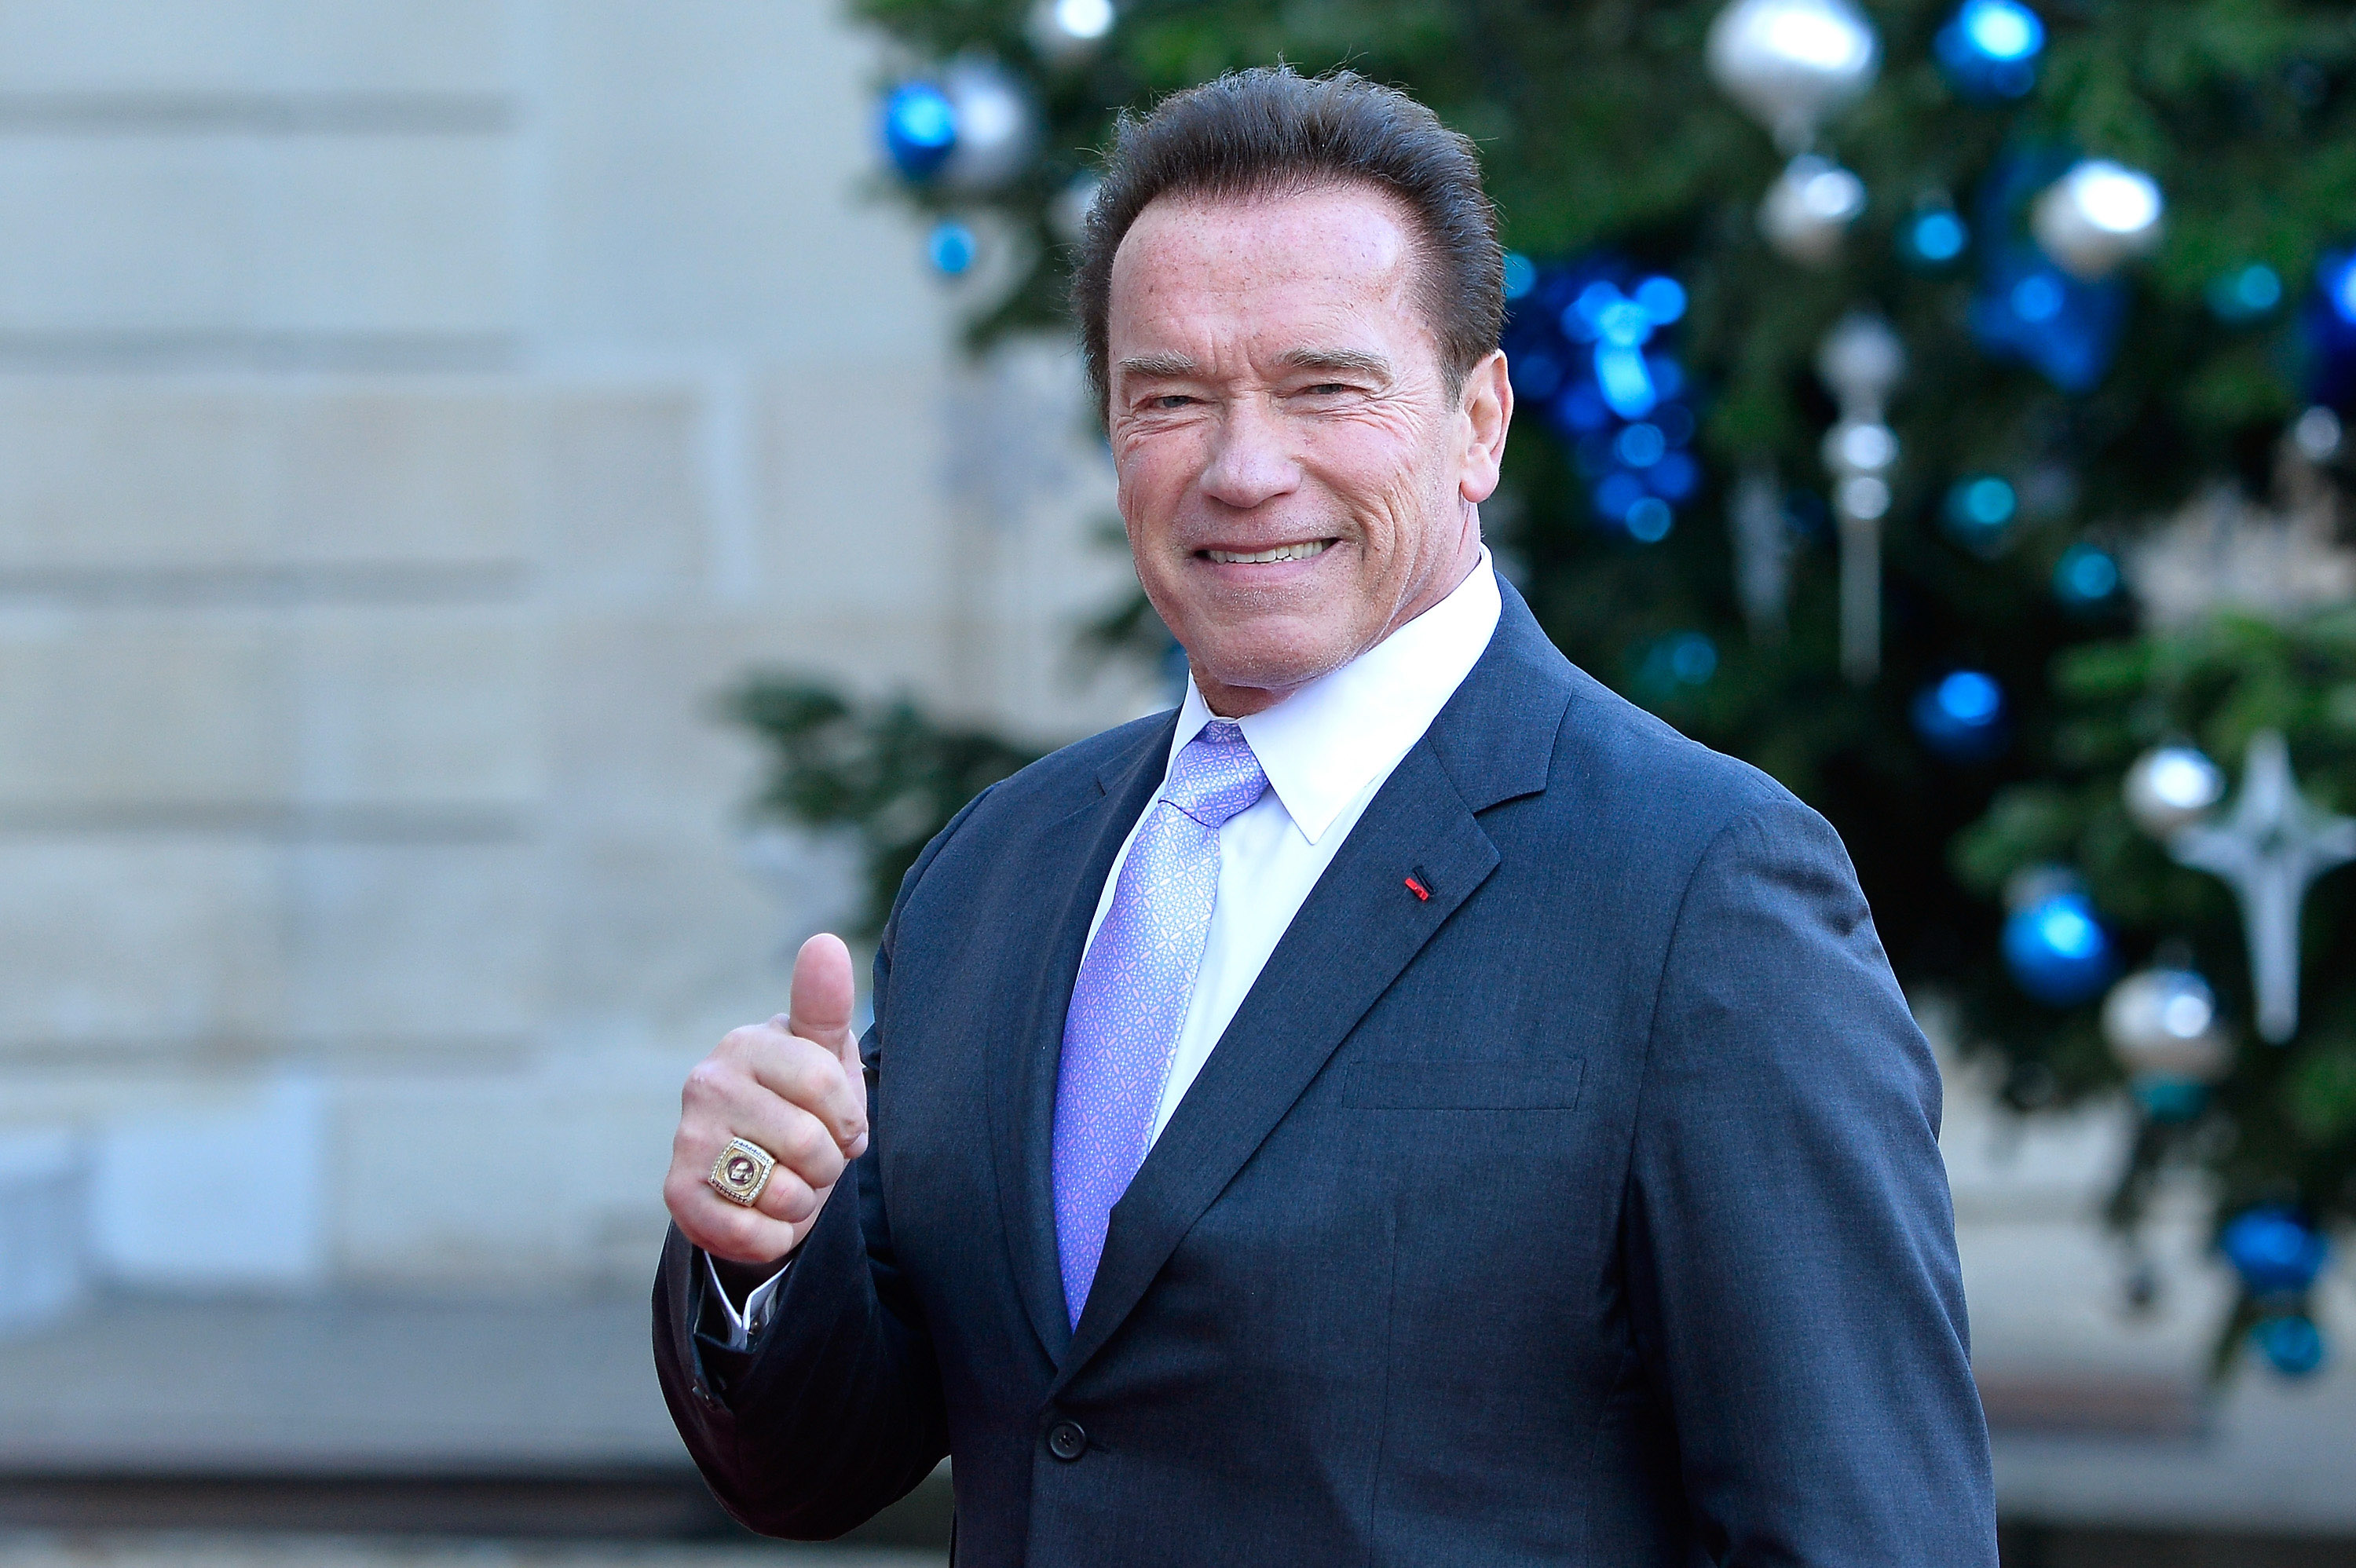 Arnold Schwarzenegger arrives for a meeting with French President Emmanuel Macron as he receives the One Planet Summit's international leaders at Elysee Palace in Paris, France on Dec. 12, 2017.